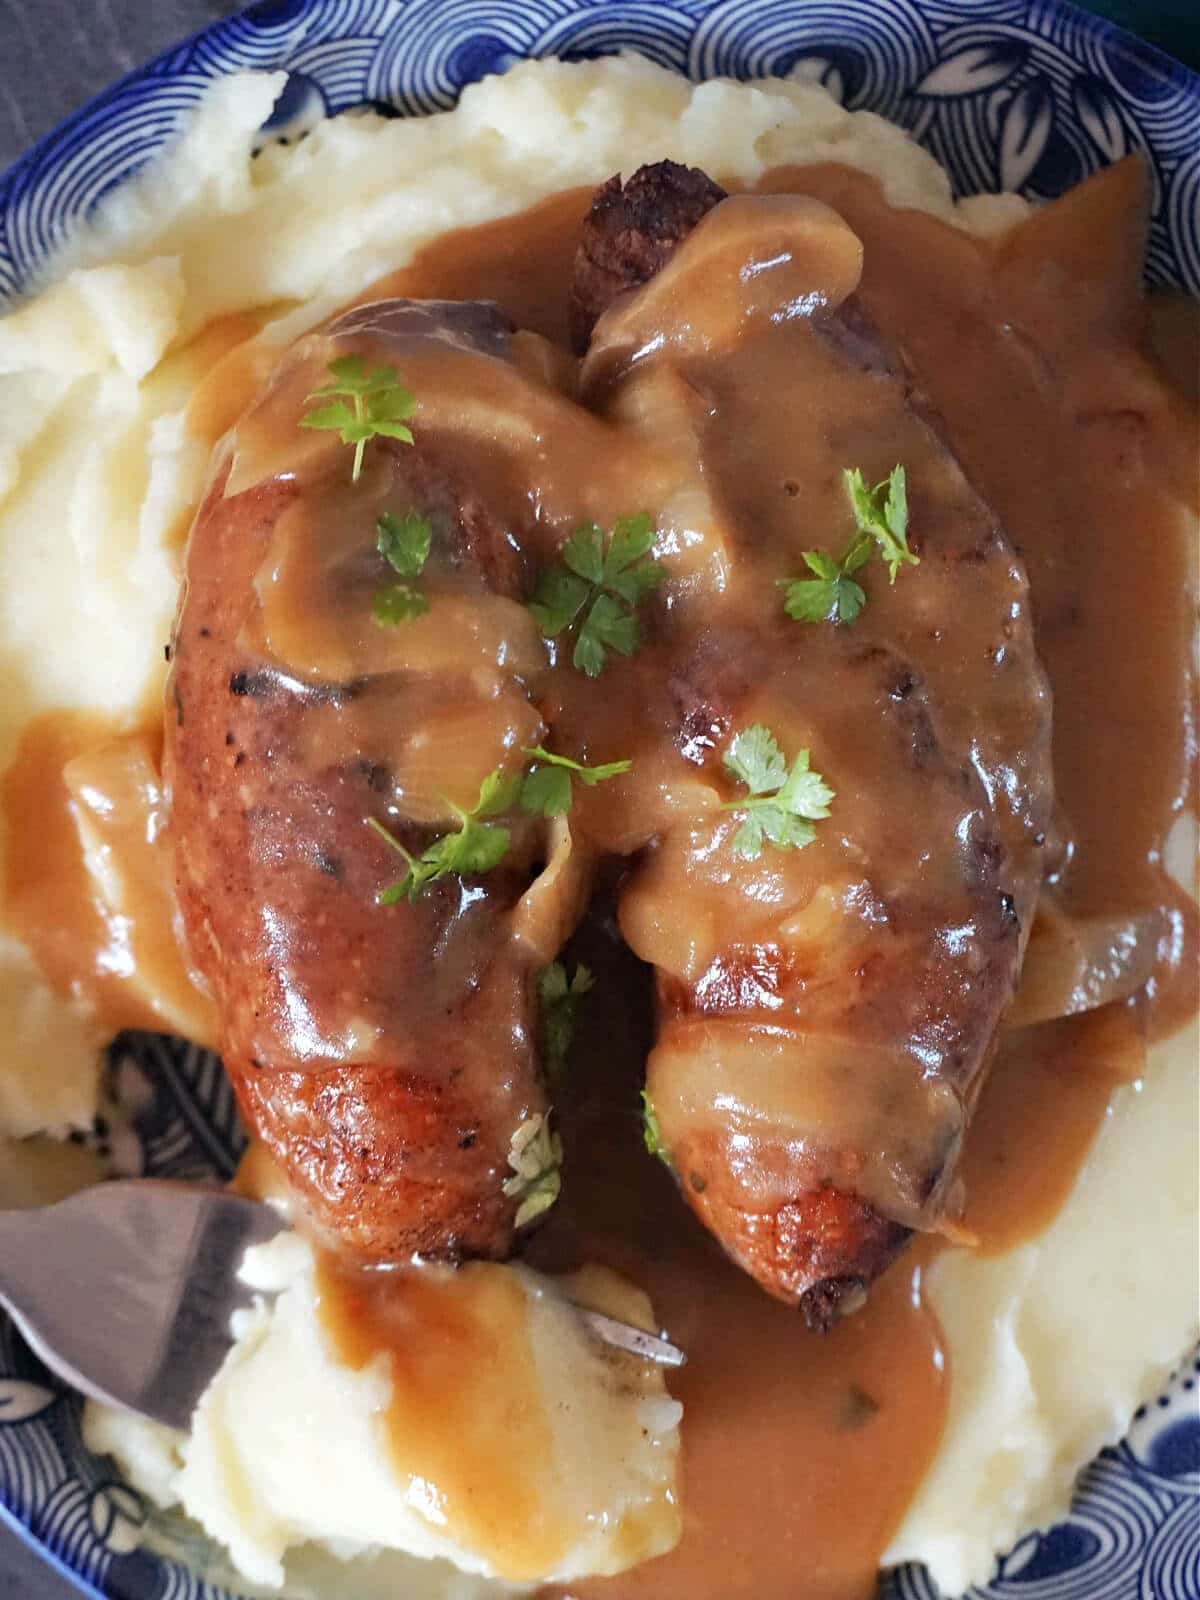 Close-up shot of 2 sausages in gravy over a bed of mash